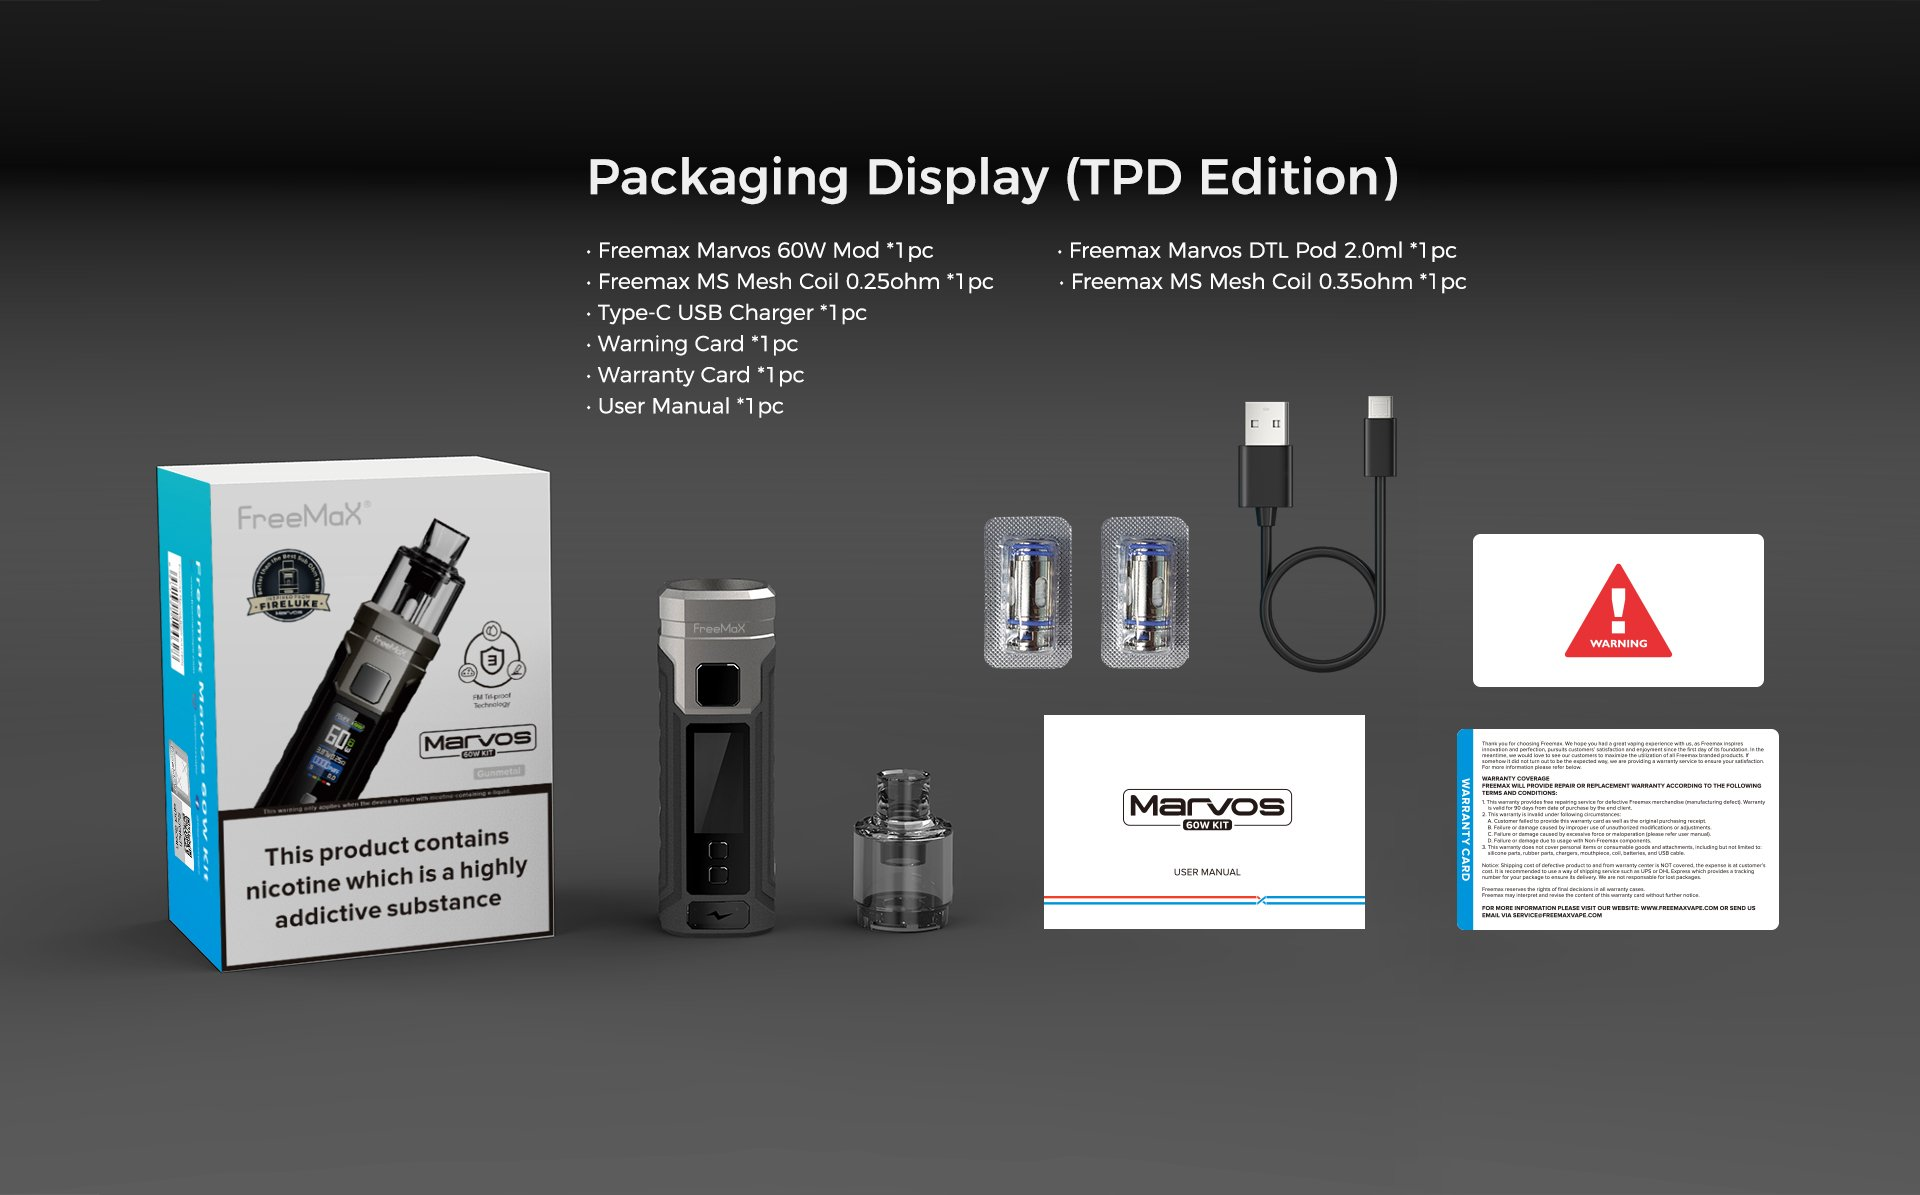 Marvos 60W Kit -packaging-display-tpd-edition